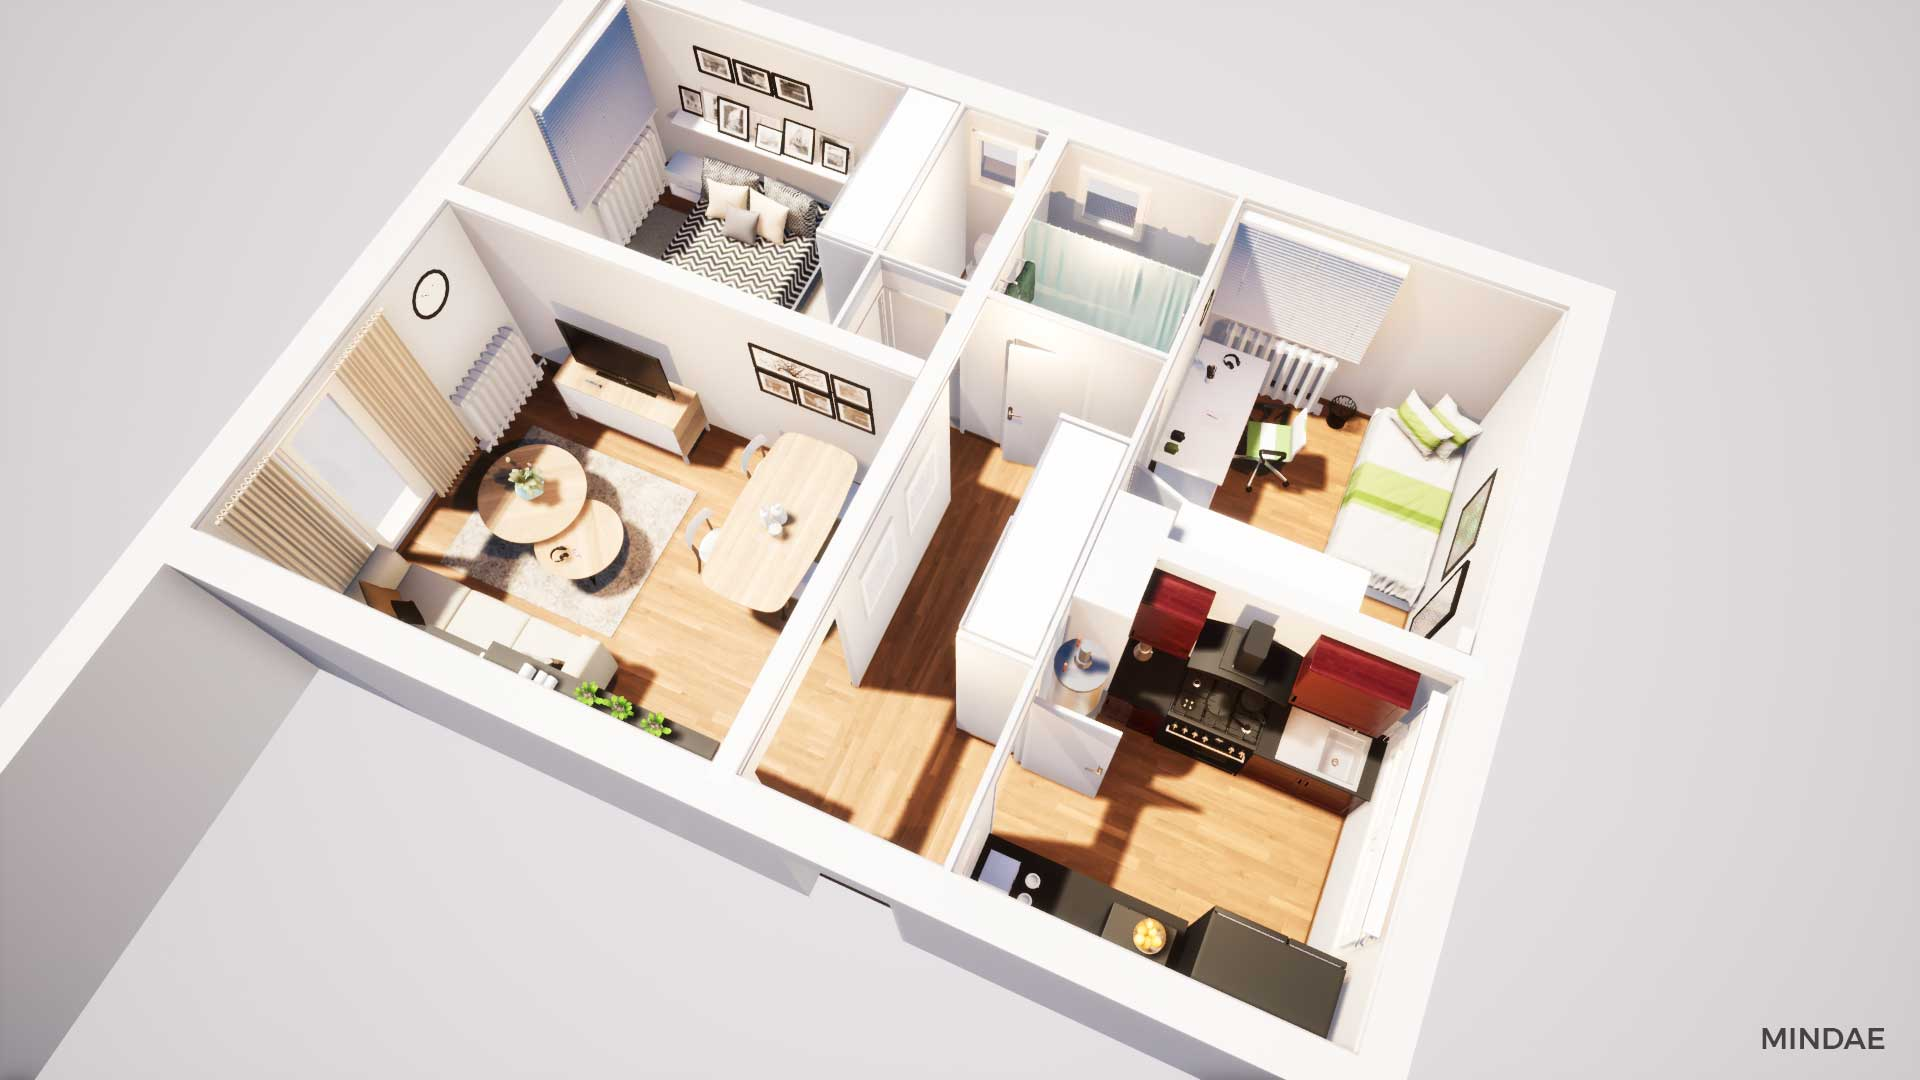 Mindae_3D_appartement_caen_immobilier_homestaging_(2)